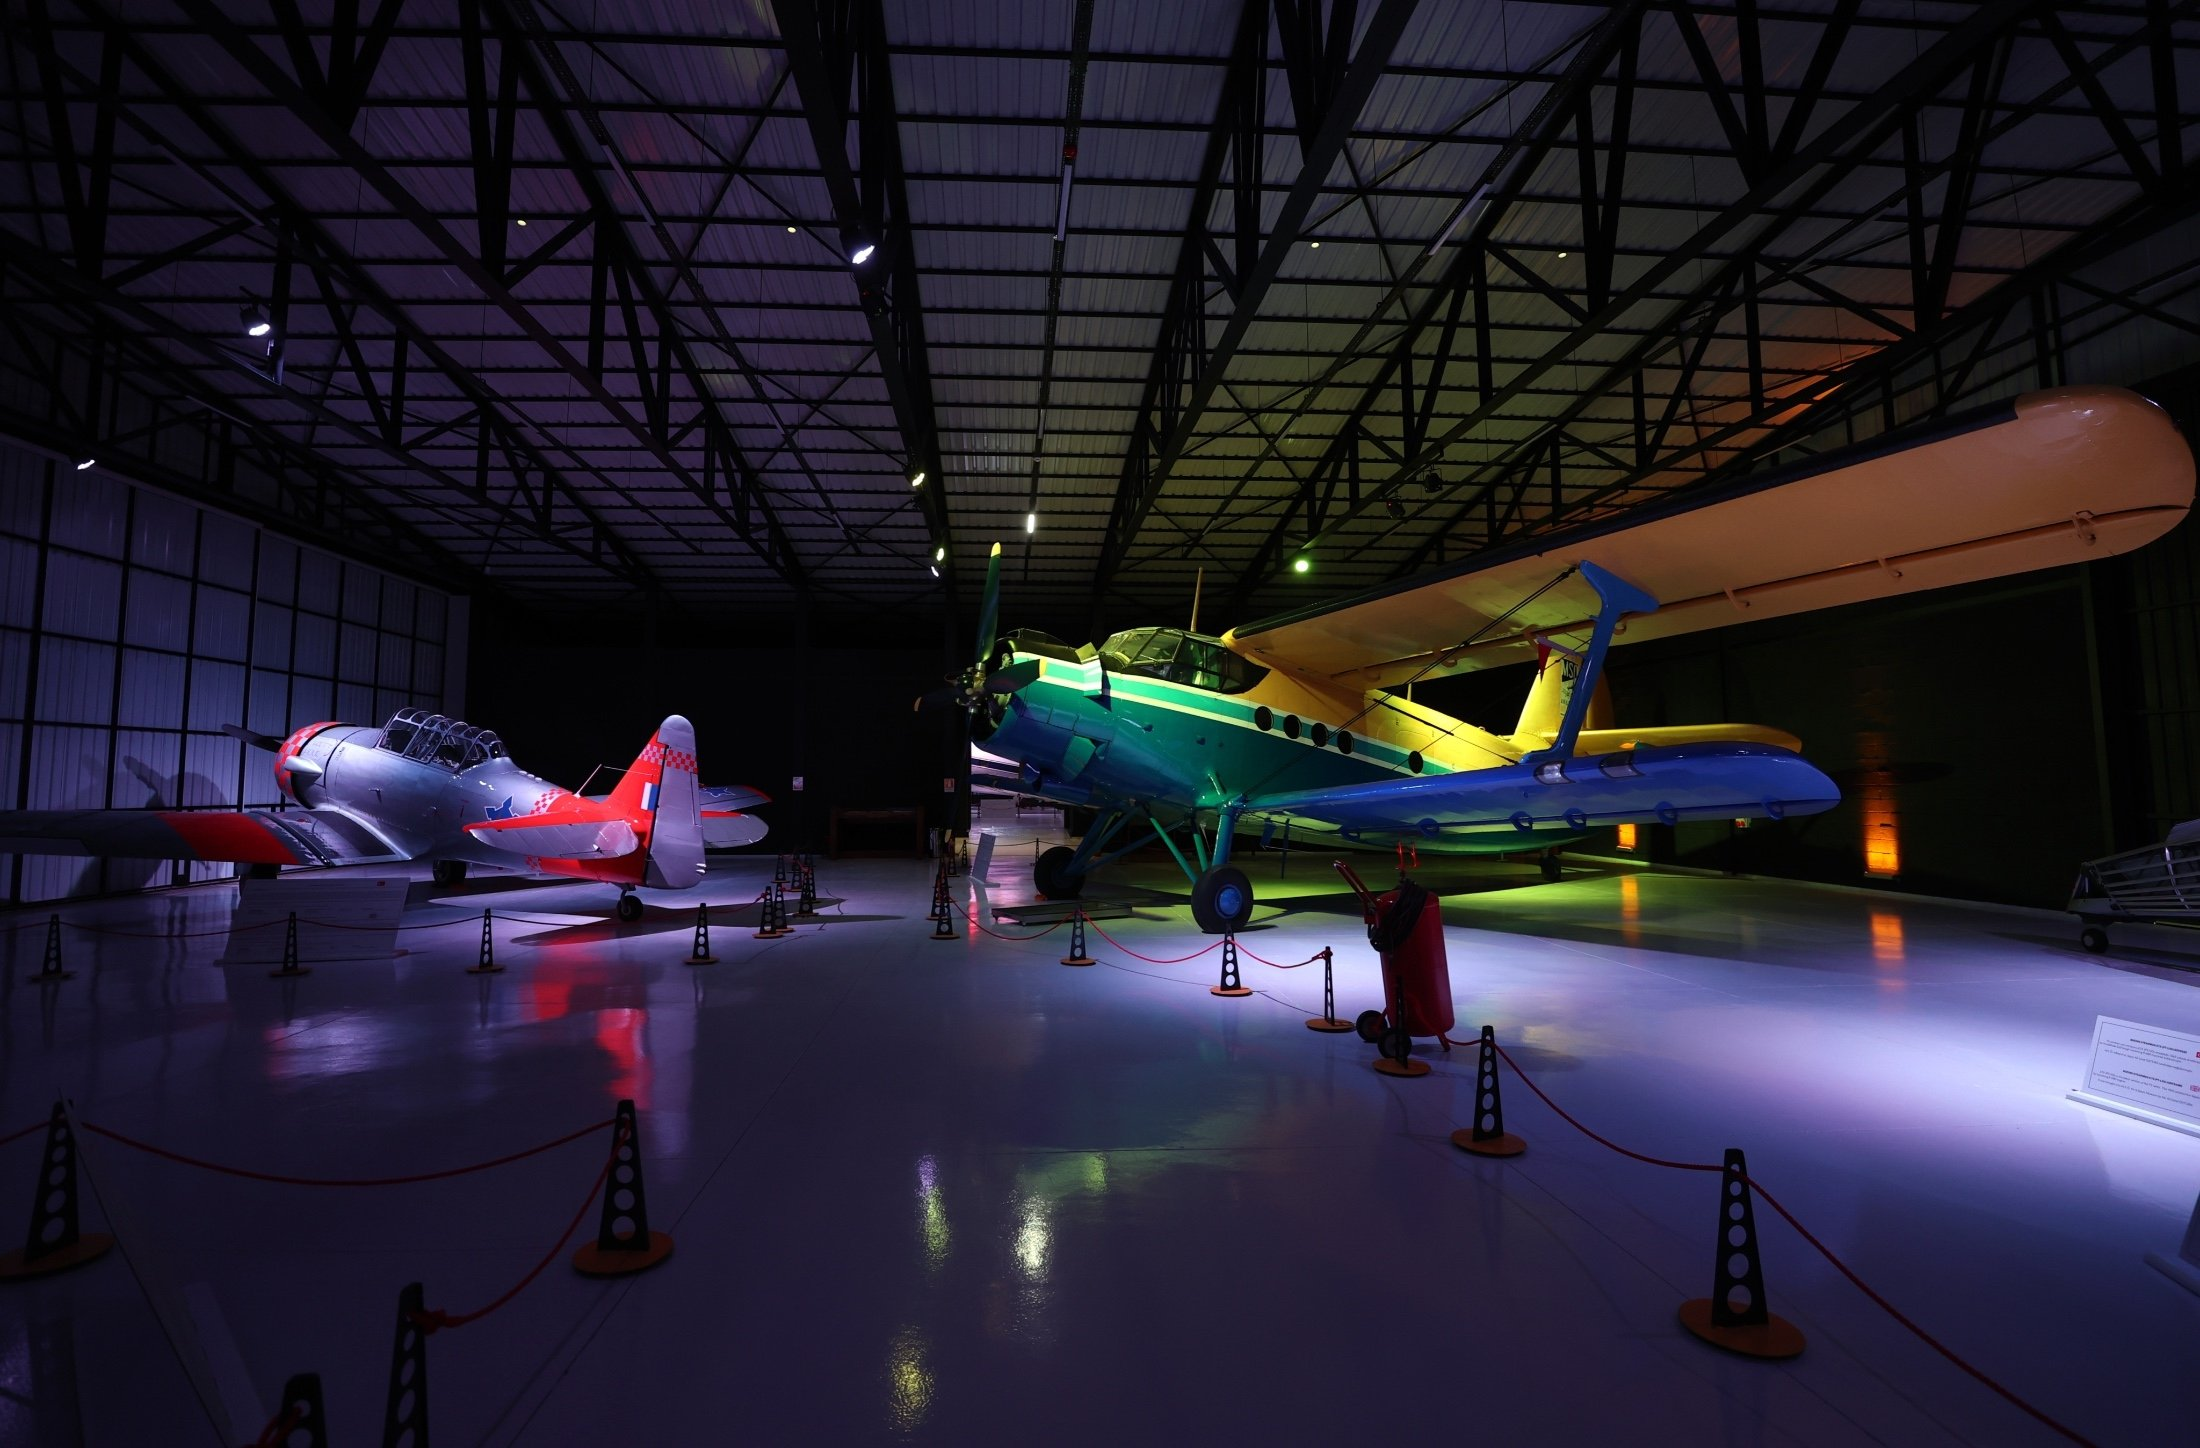 Various historical aircraft, some of which have starred in Hollywood films, are on display at the M.S.Ö. Air and Space Museum in the Sivrihisar district of Eskişehir, Turkey, May 17, 2021. (AA Photo)